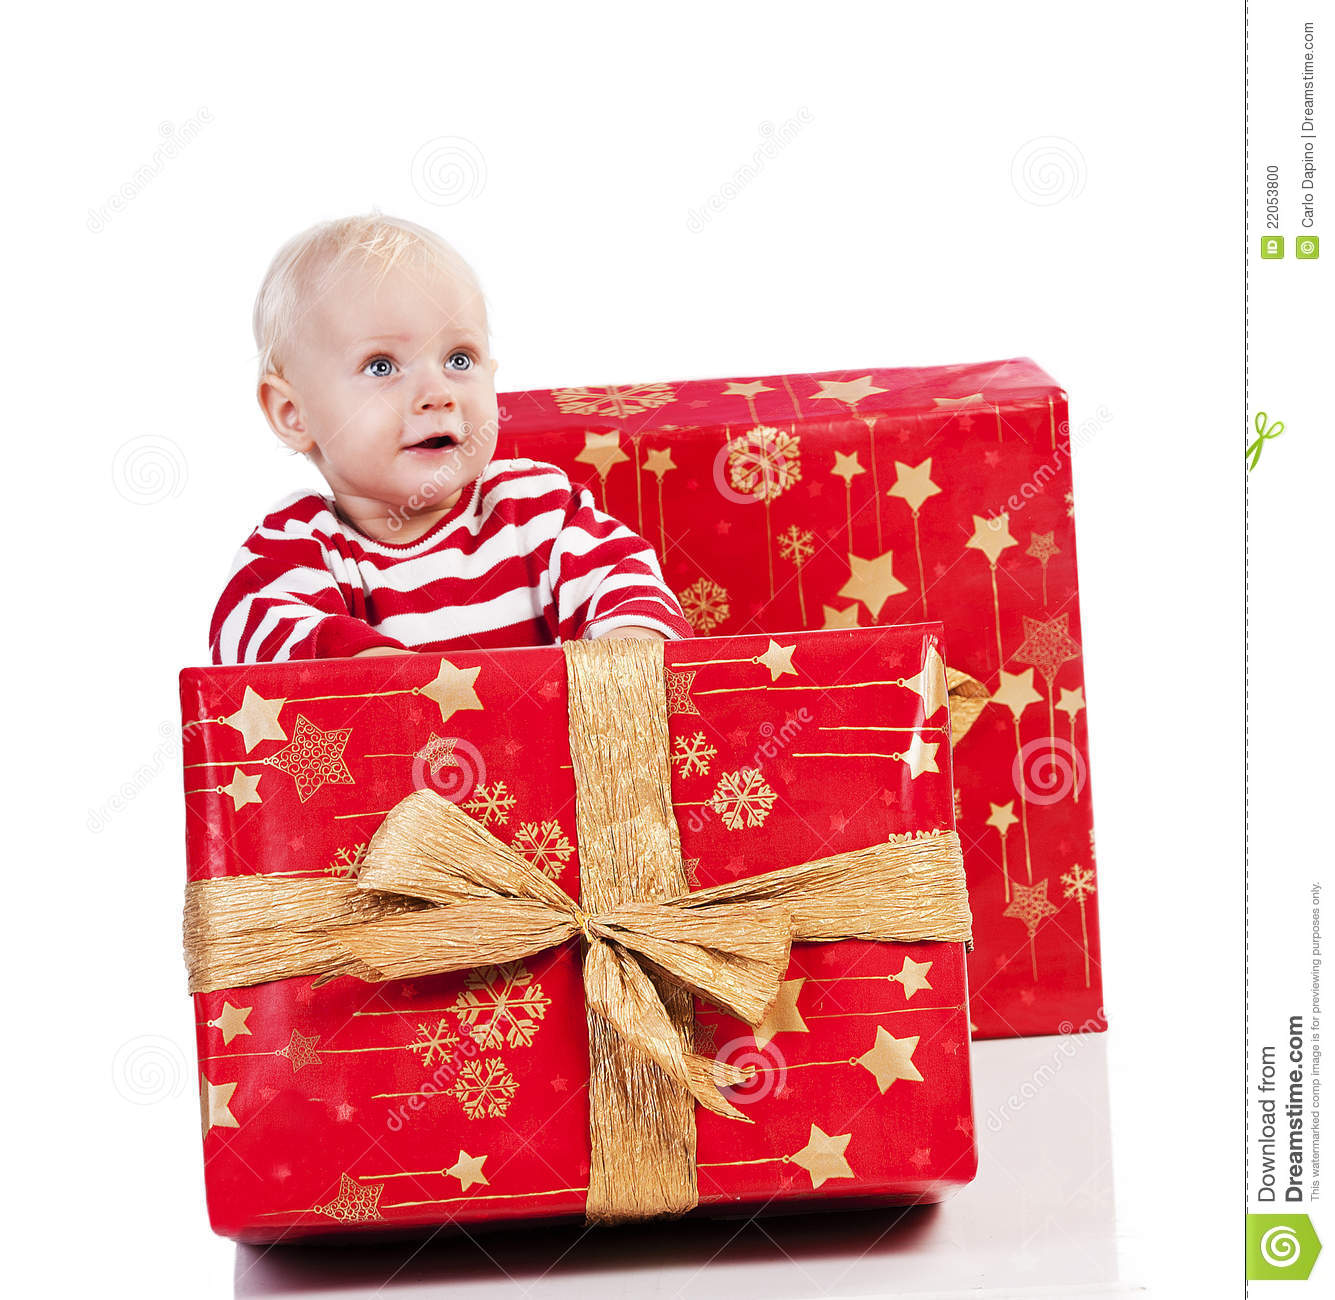 Baby Boy Gifts Christmas : Christmas baby boy with gift box is sitting stock